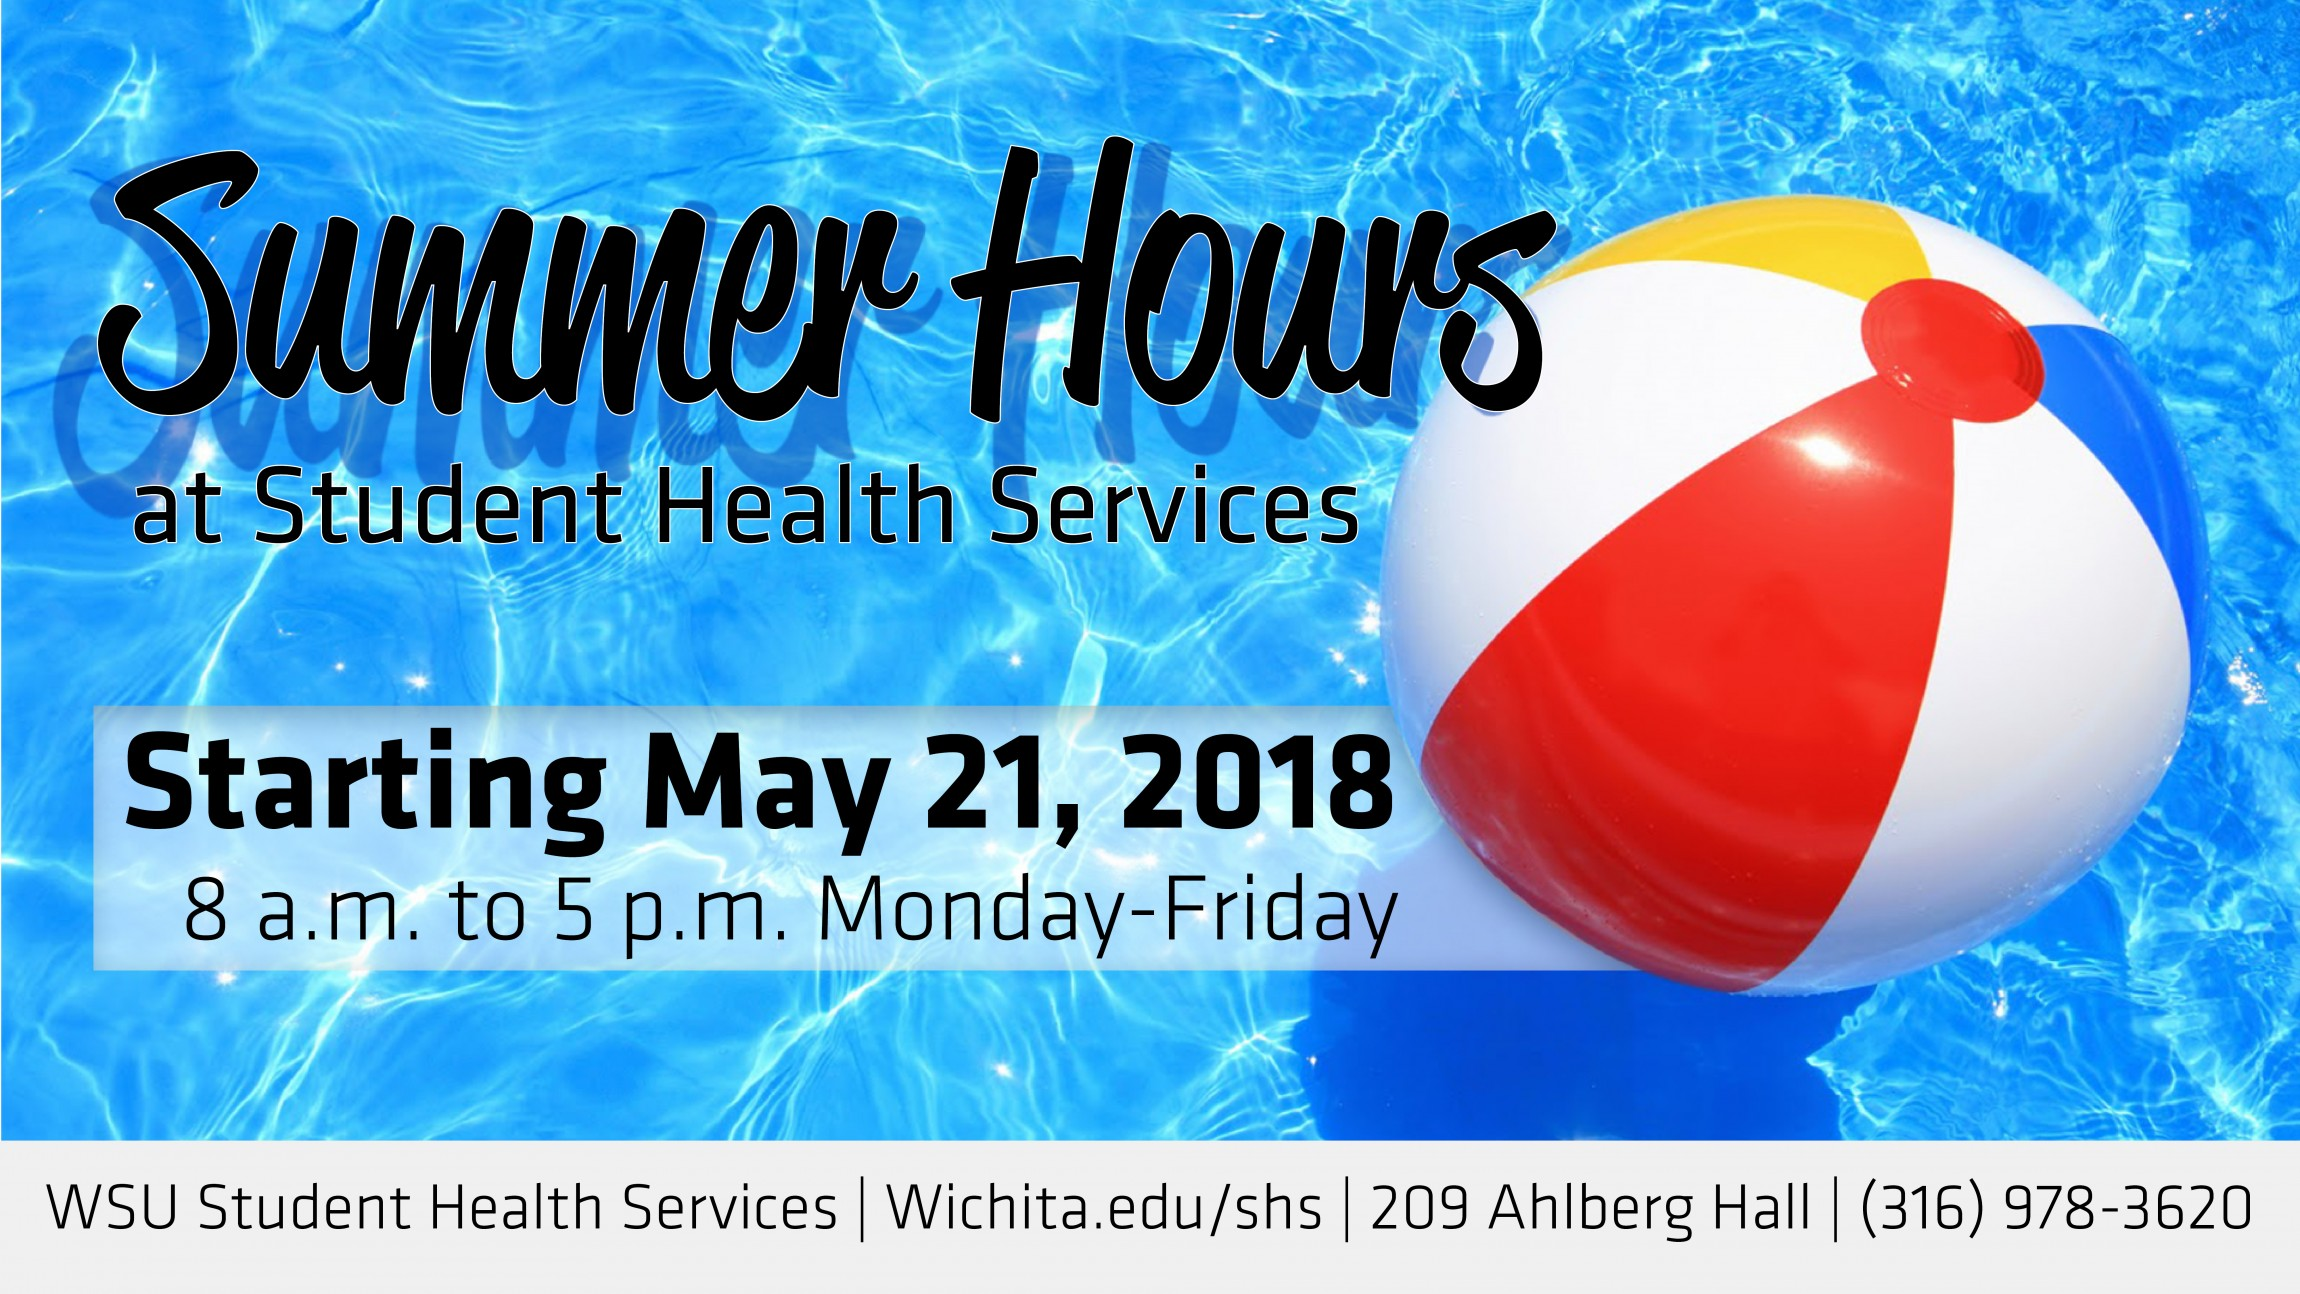 Summer Hours at Student Health Services; Monday through Friday 8 a.m. to 5 p.m.